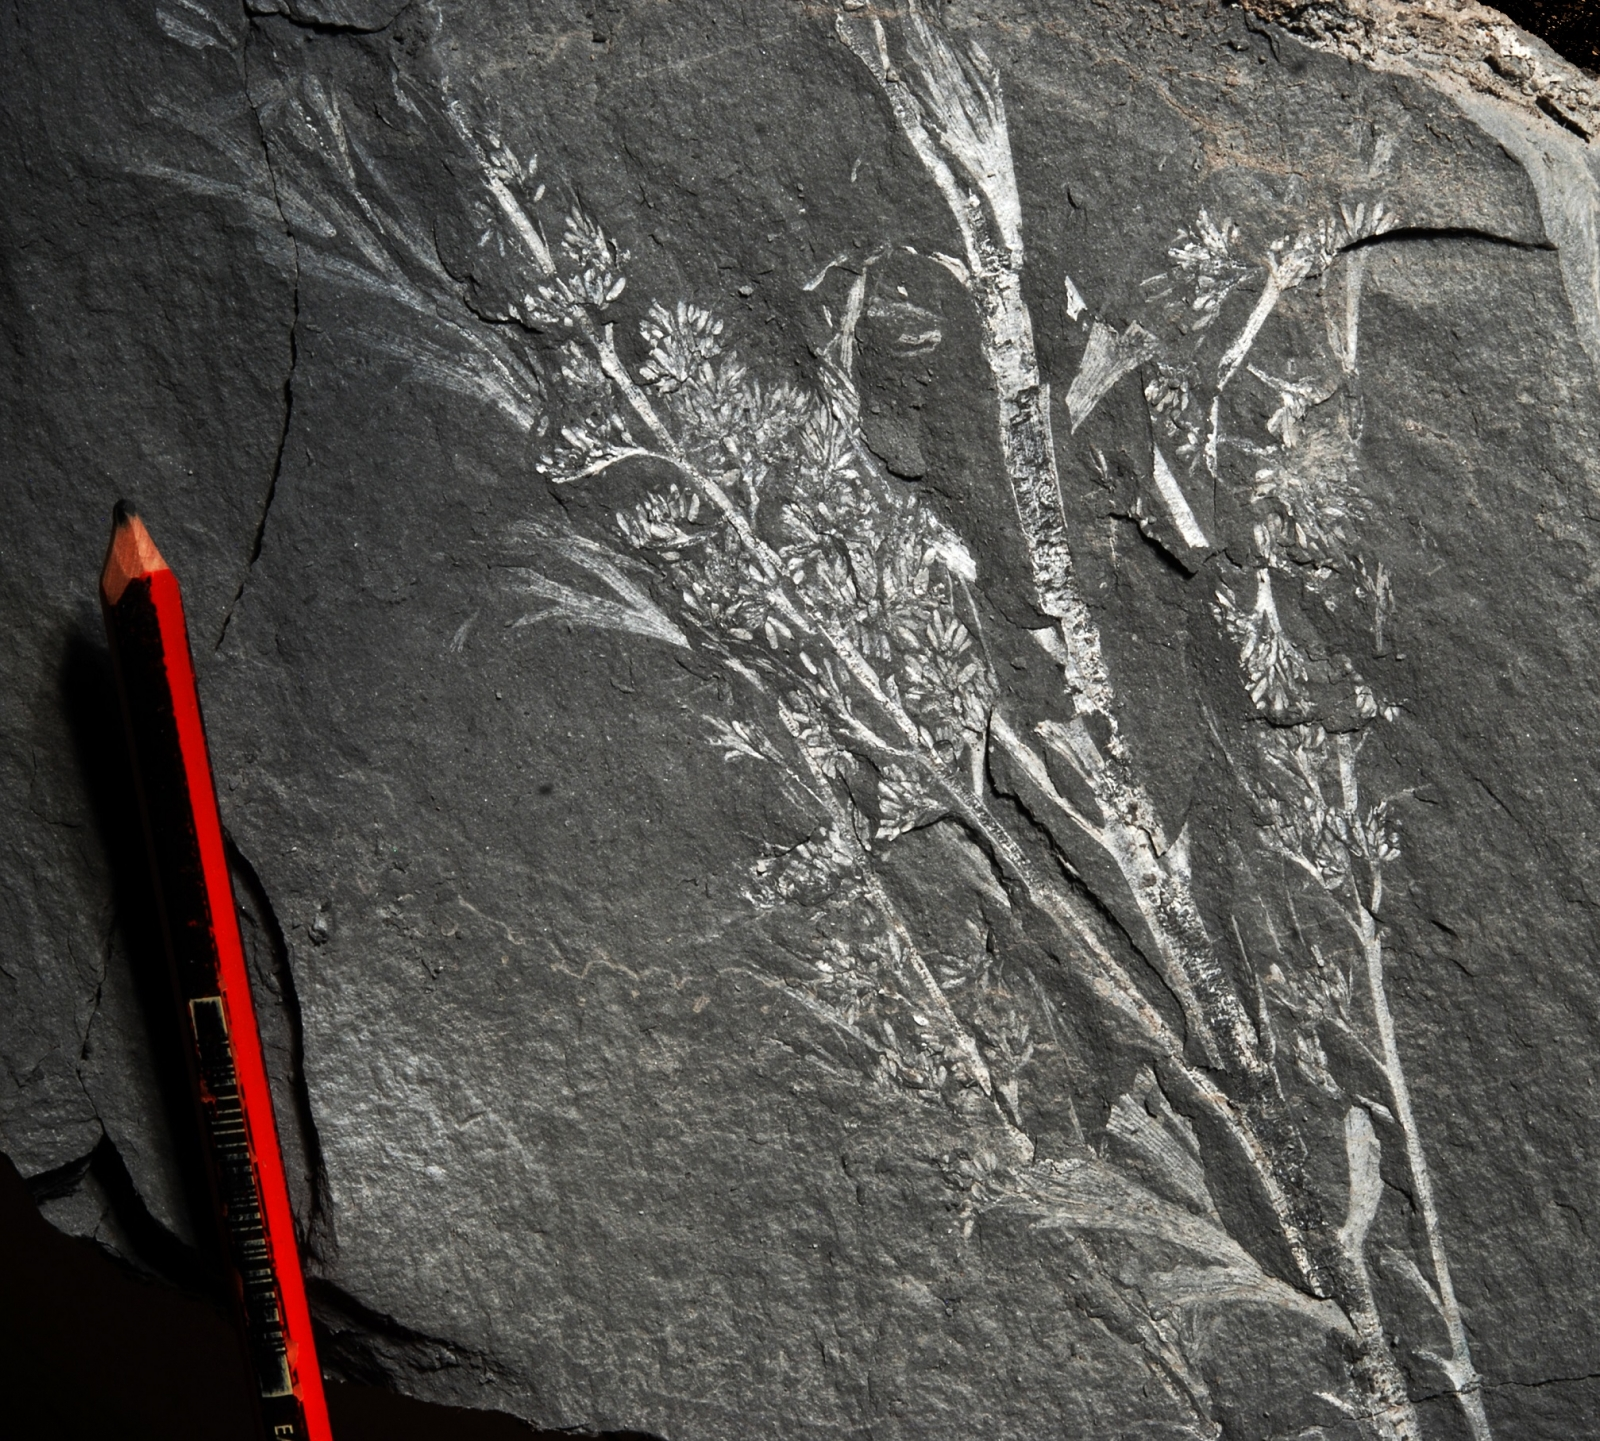 South Africa fossils